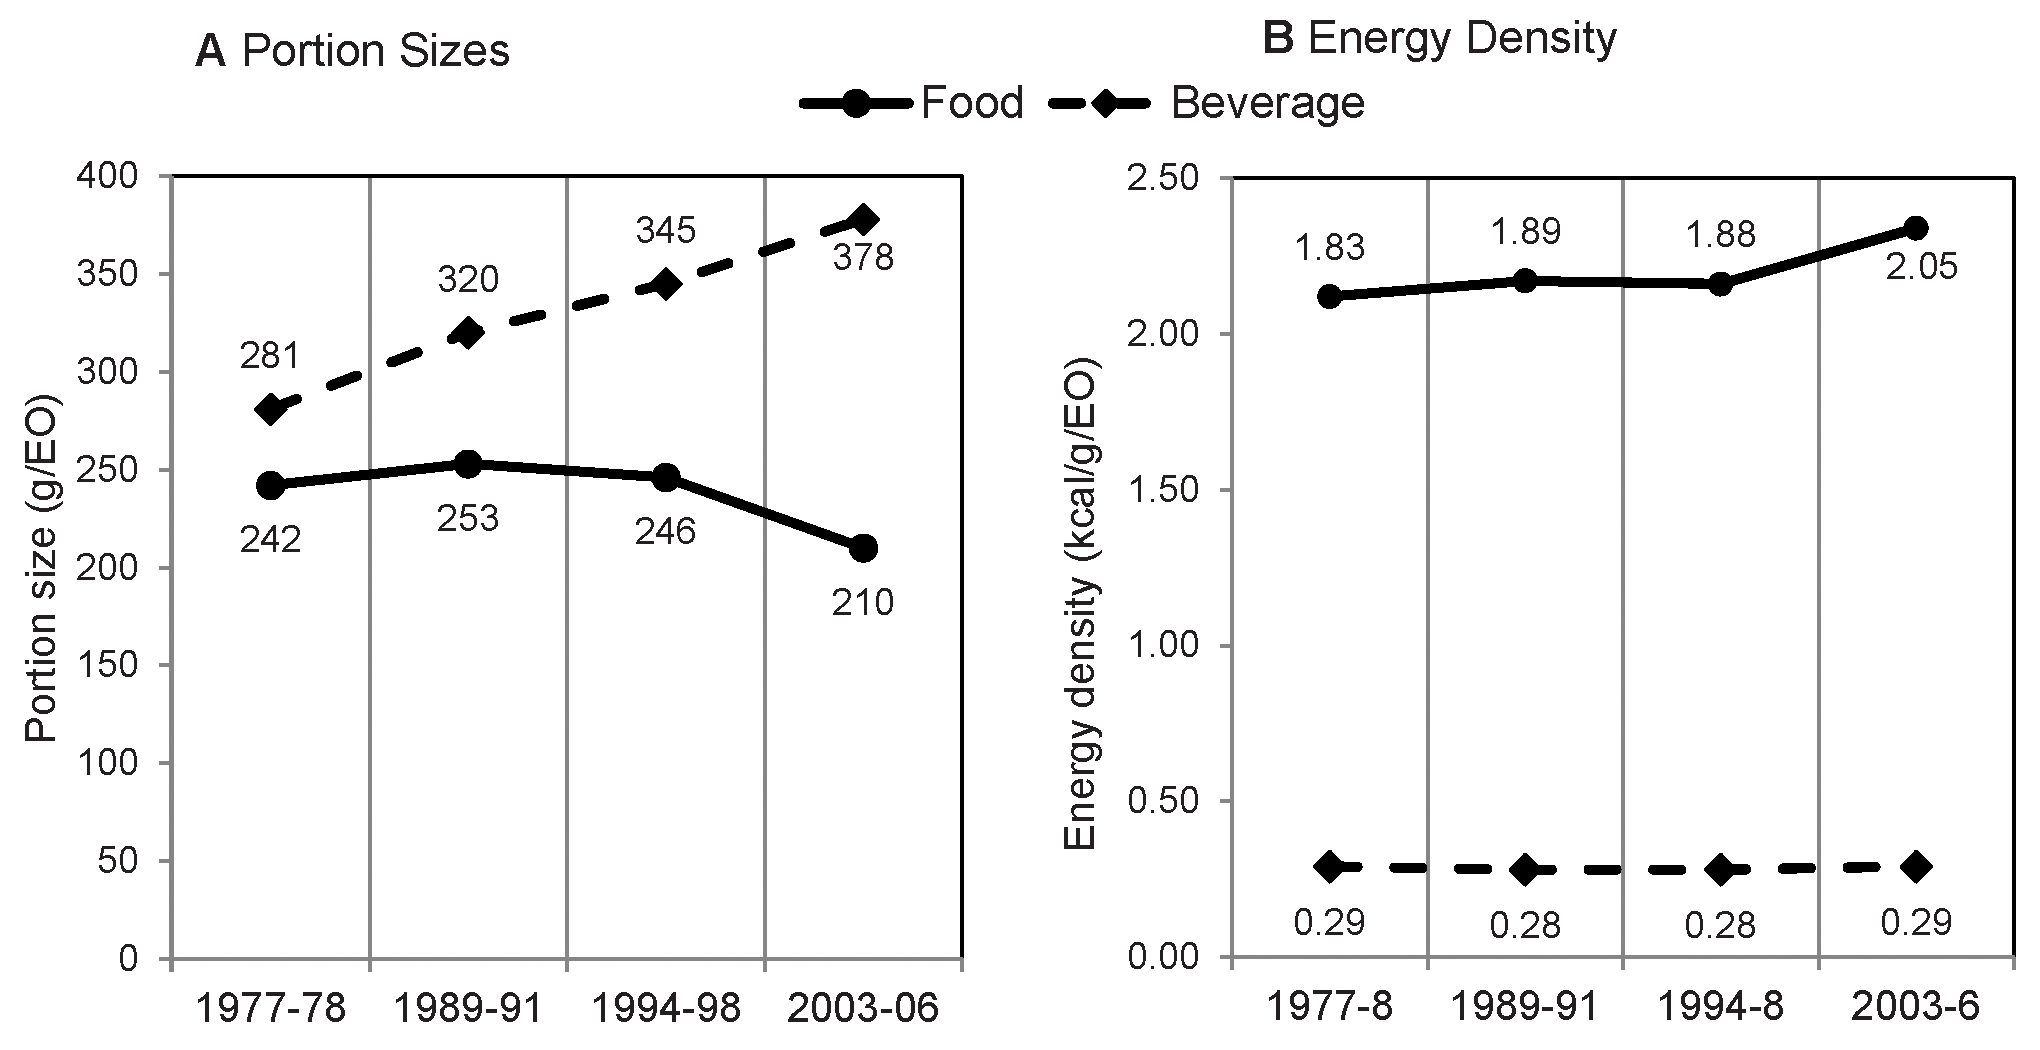 Average portion size and energy density per eating occasion, by food and beverage.